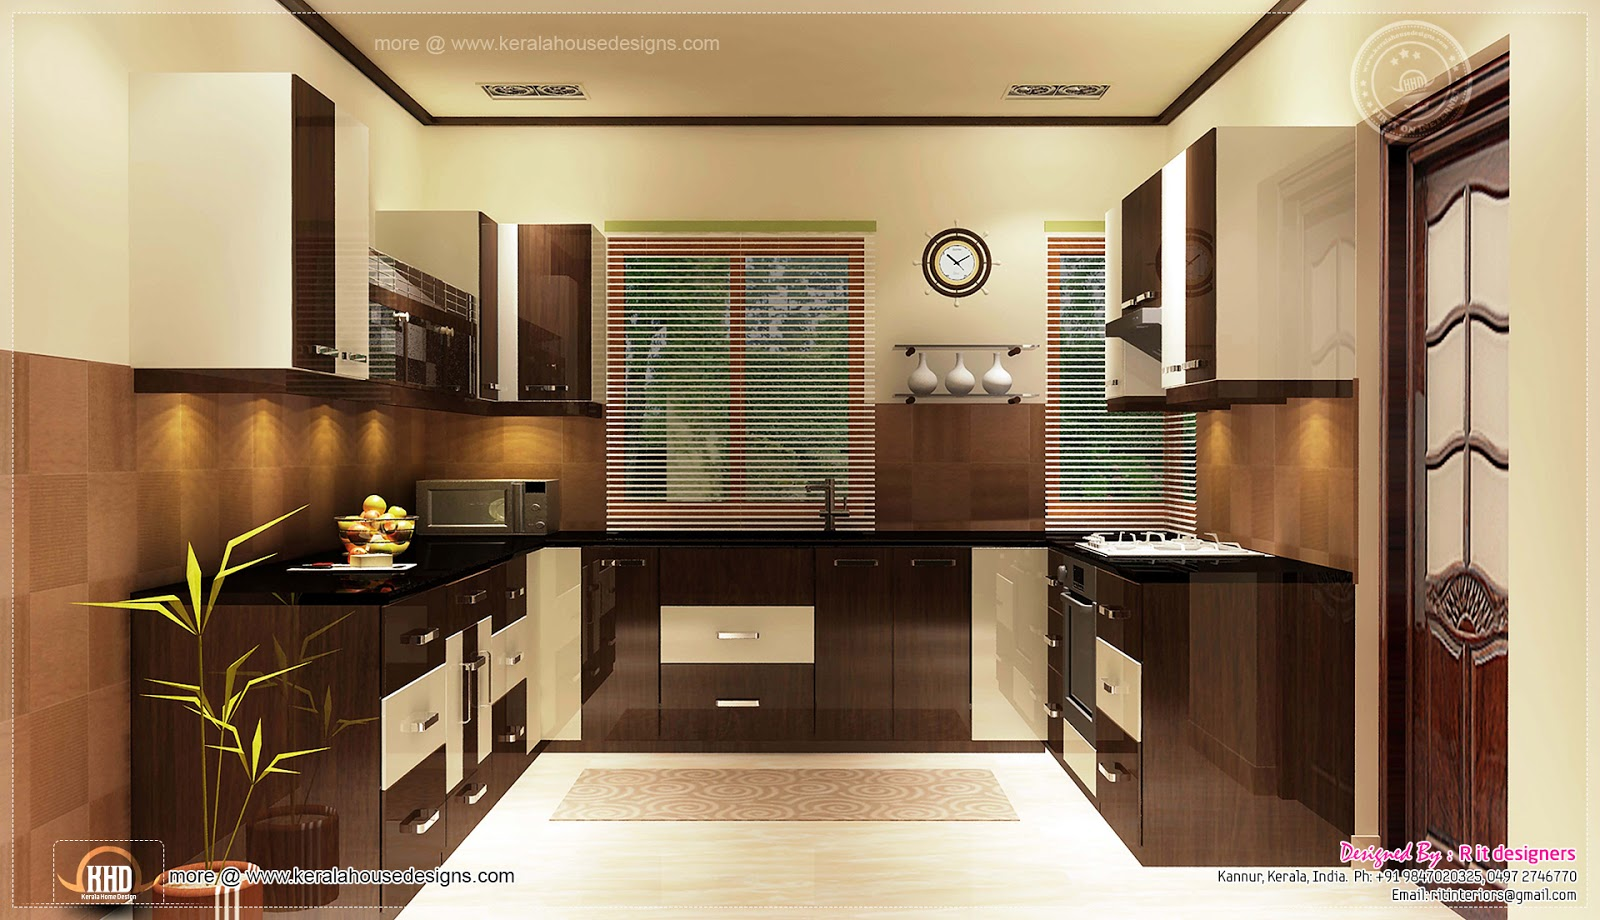 Home interior designs by rit designers kerala home House model interior design